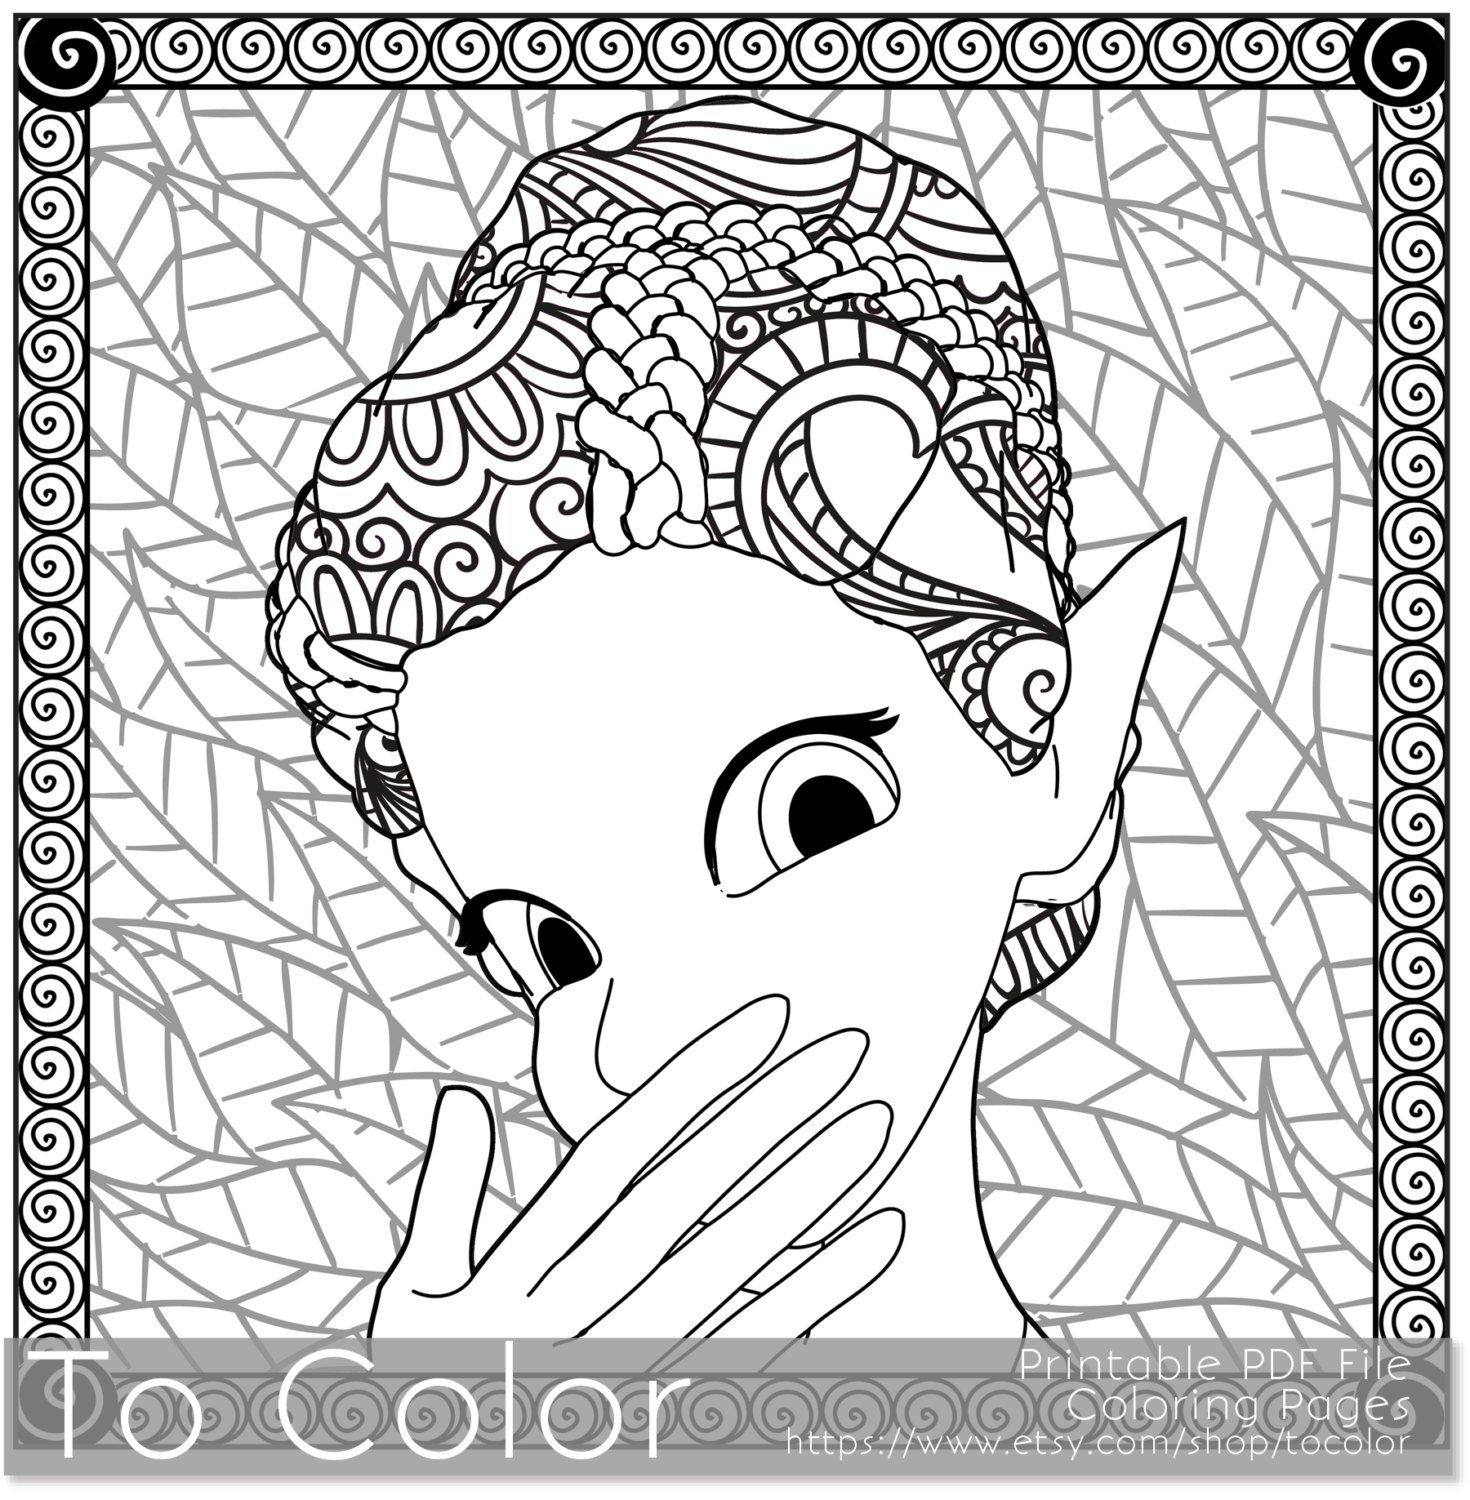 Retro Girl Pixie Fairy Printable Coloring Pages For Adults